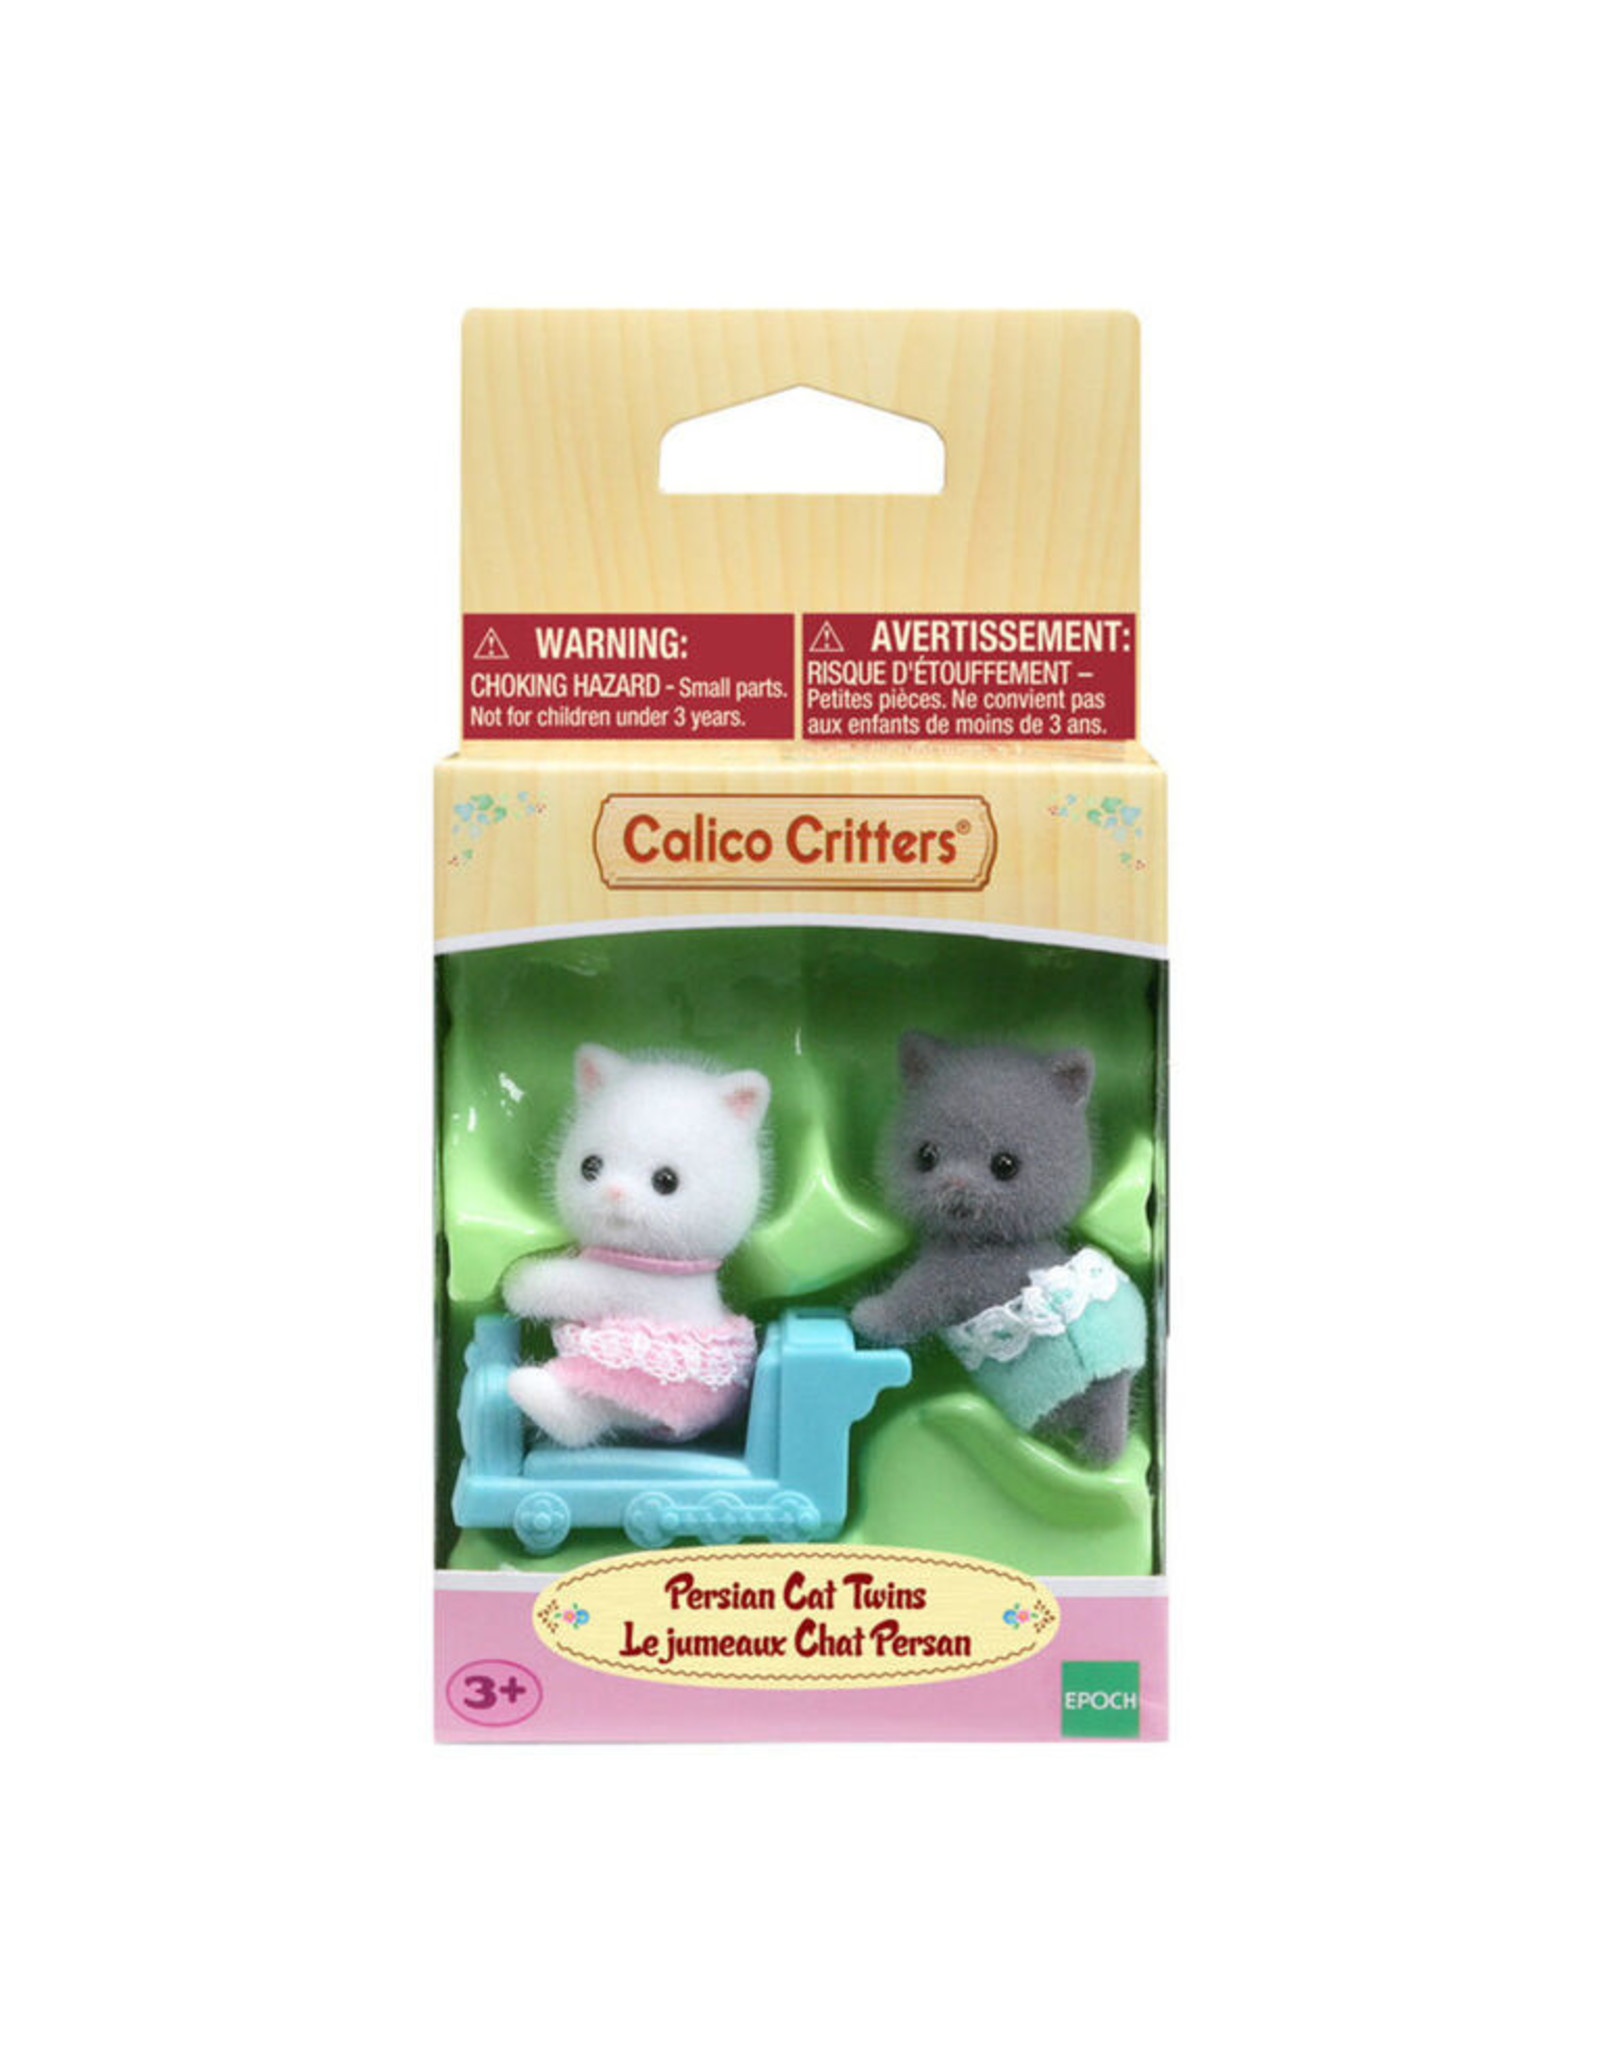 Calico Critters Calico Critters Persian Cat Twins